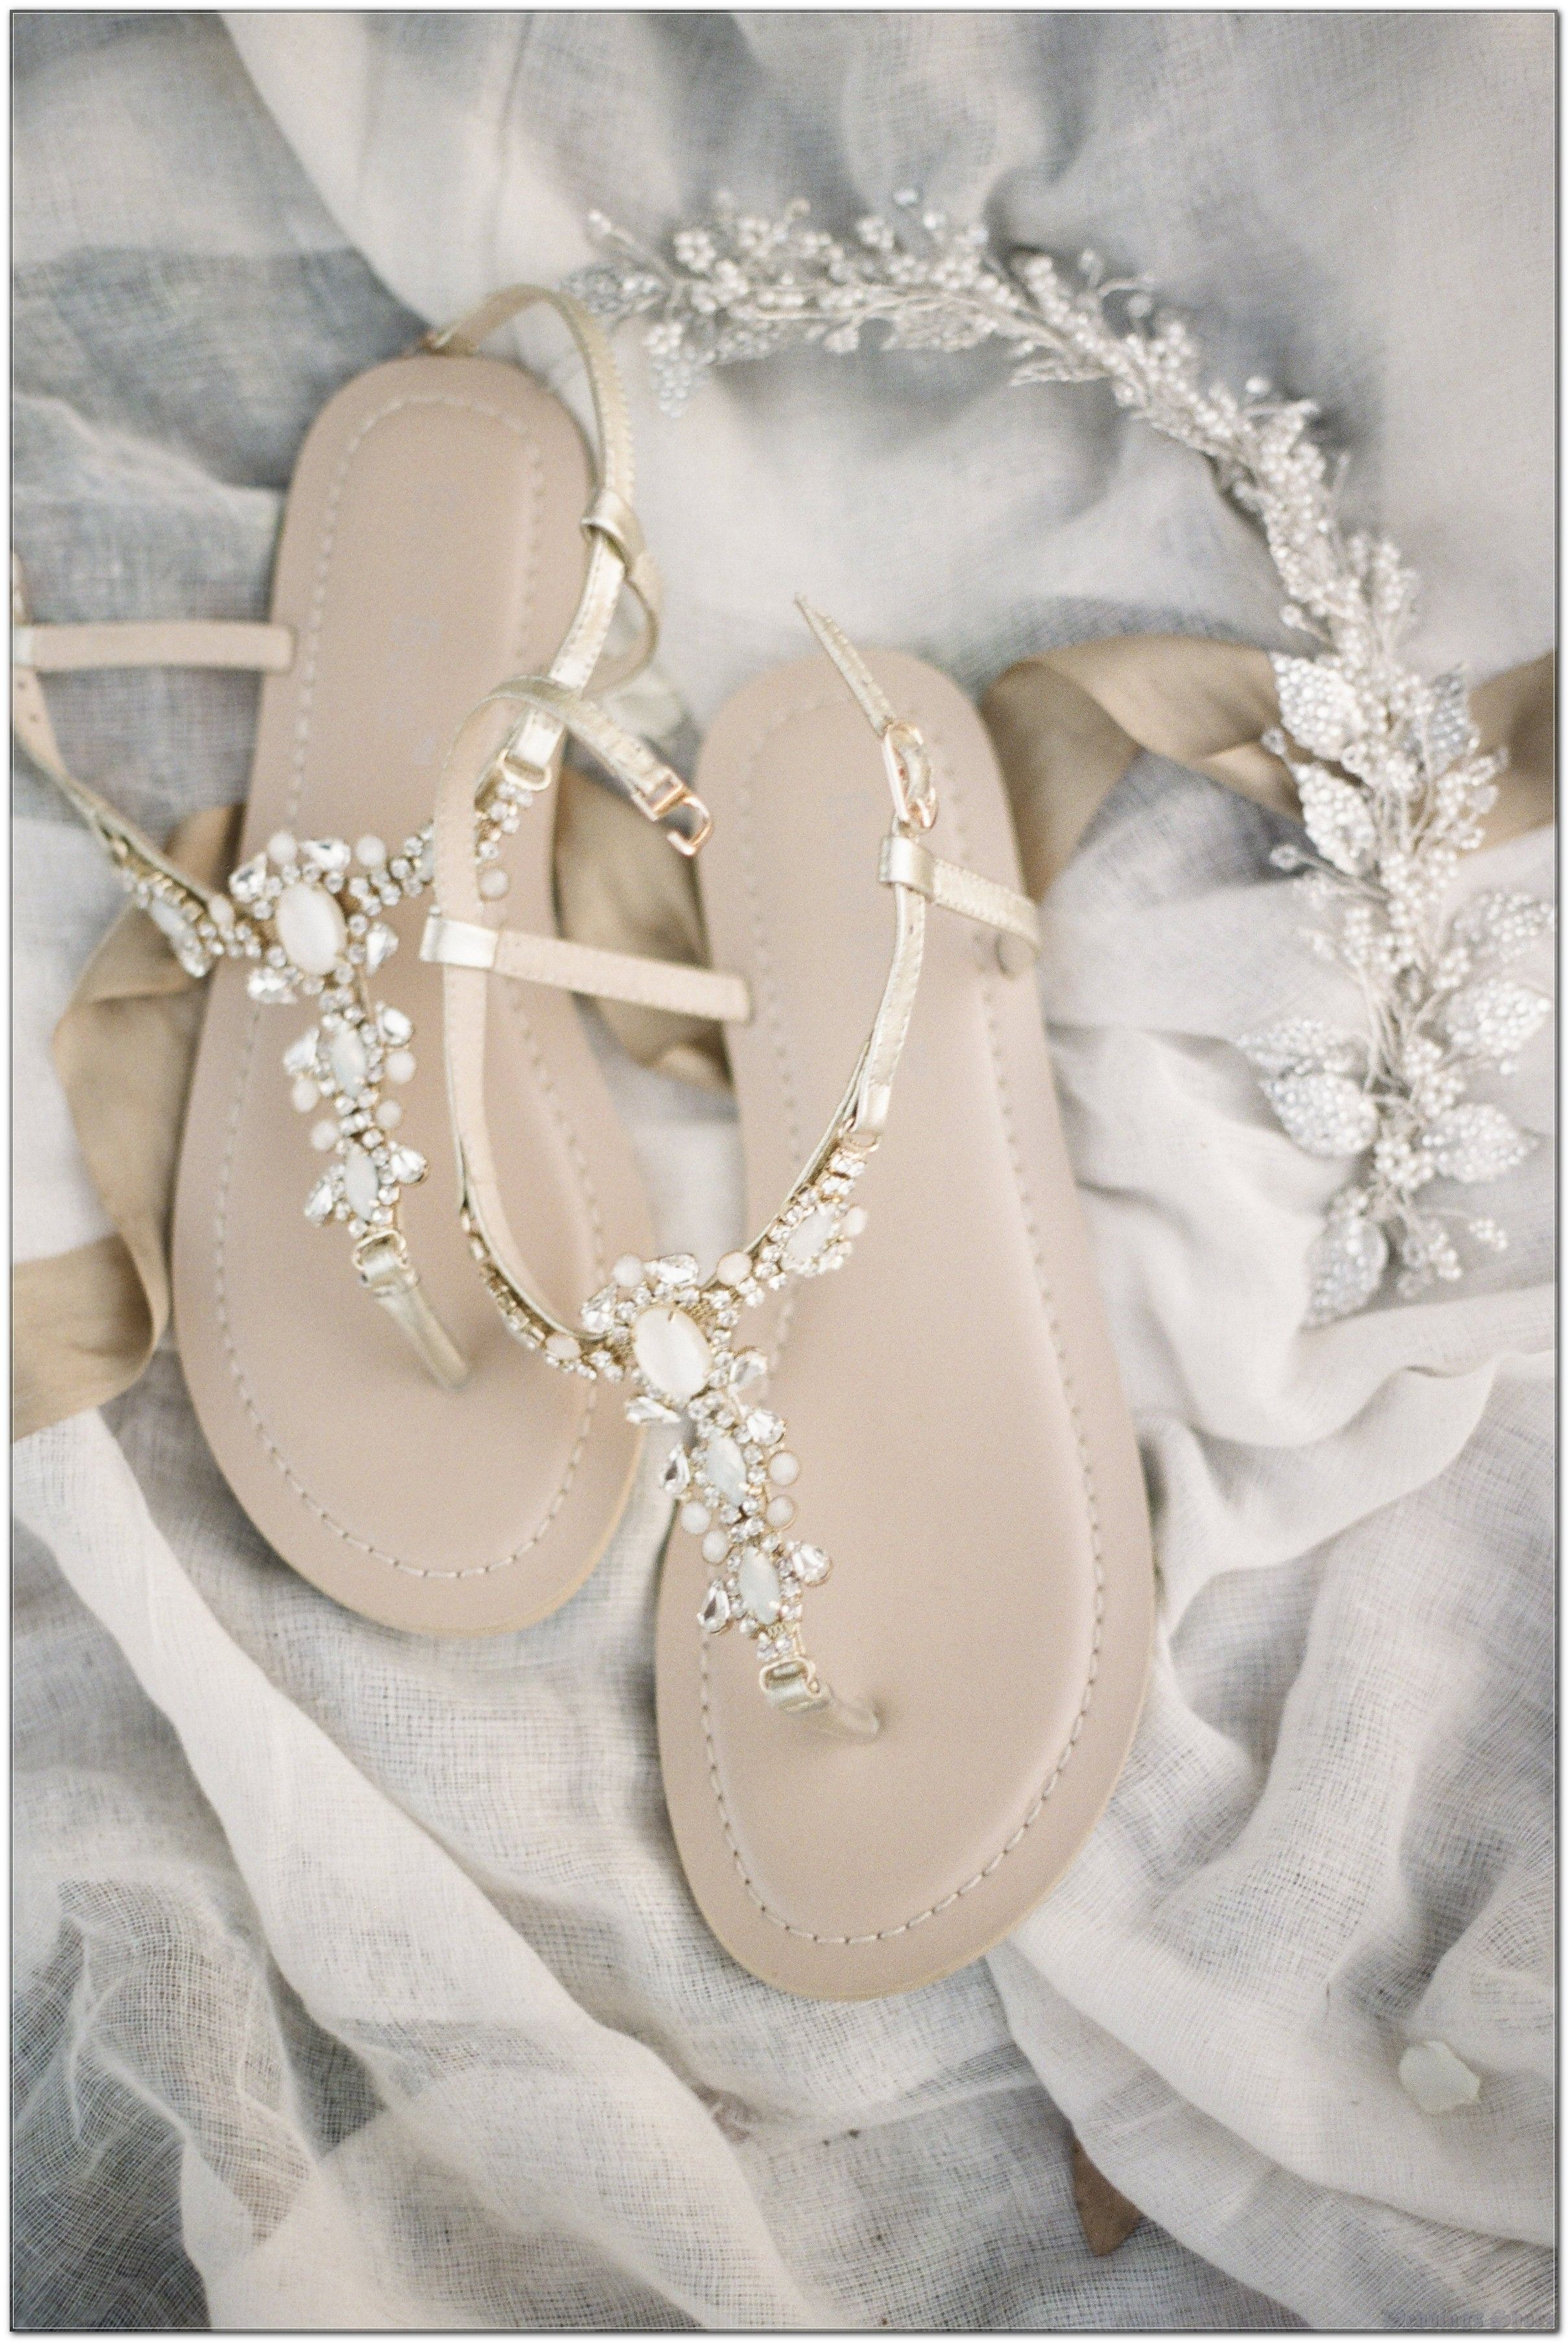 Need More Time? Read These Tips To Eliminate Wedding Shoes